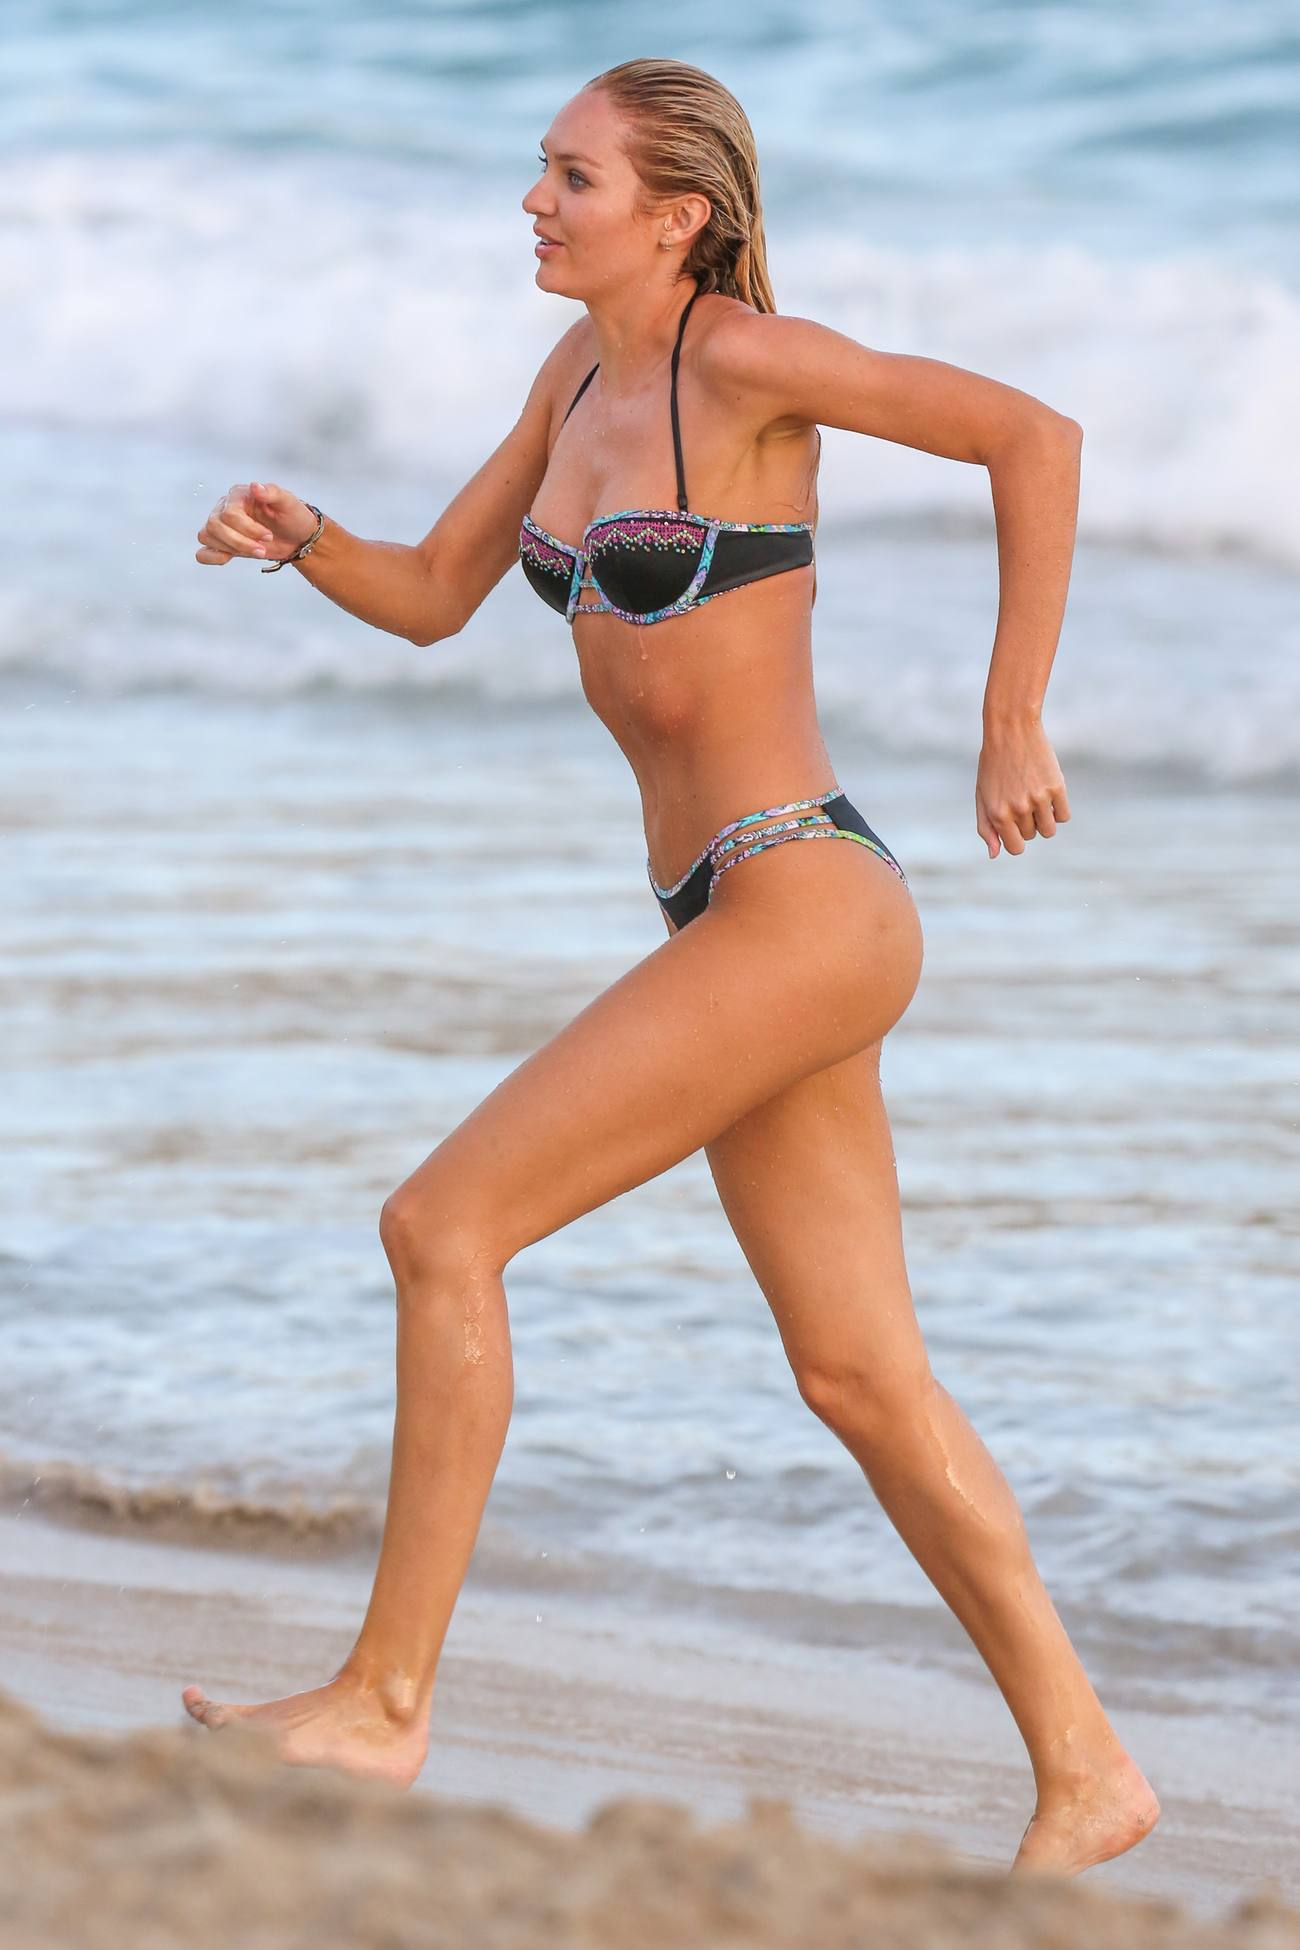 Candice Swanepoel Shooting for Victorias Secret Bikini Photoshoots-1